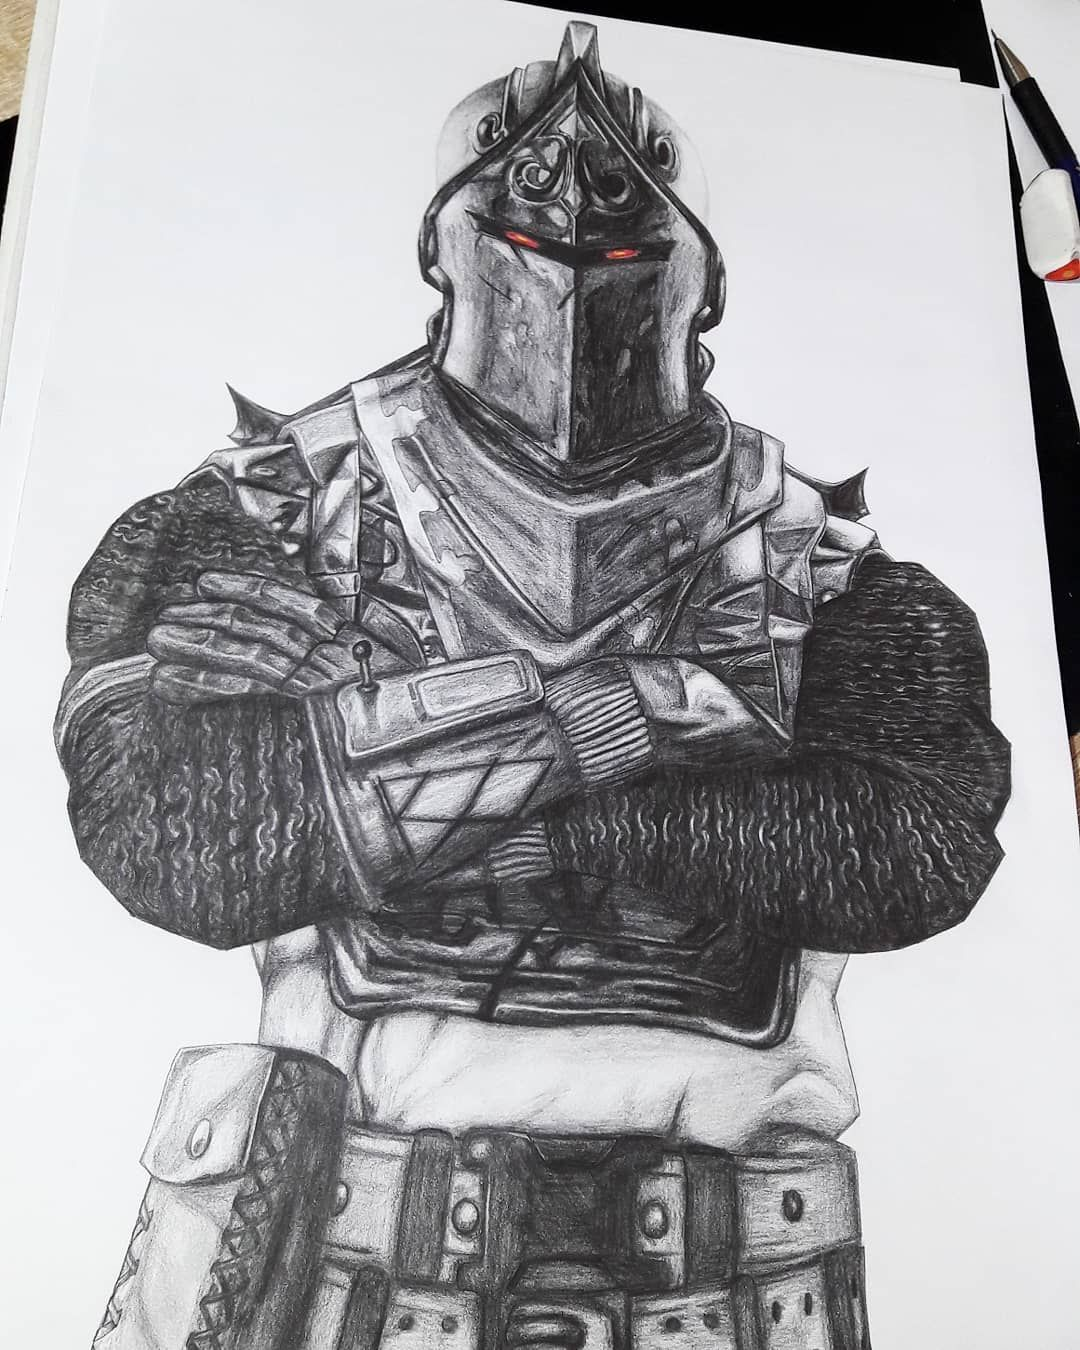 I drawed the BLACK KNIGHT from fortnite hope you guys like